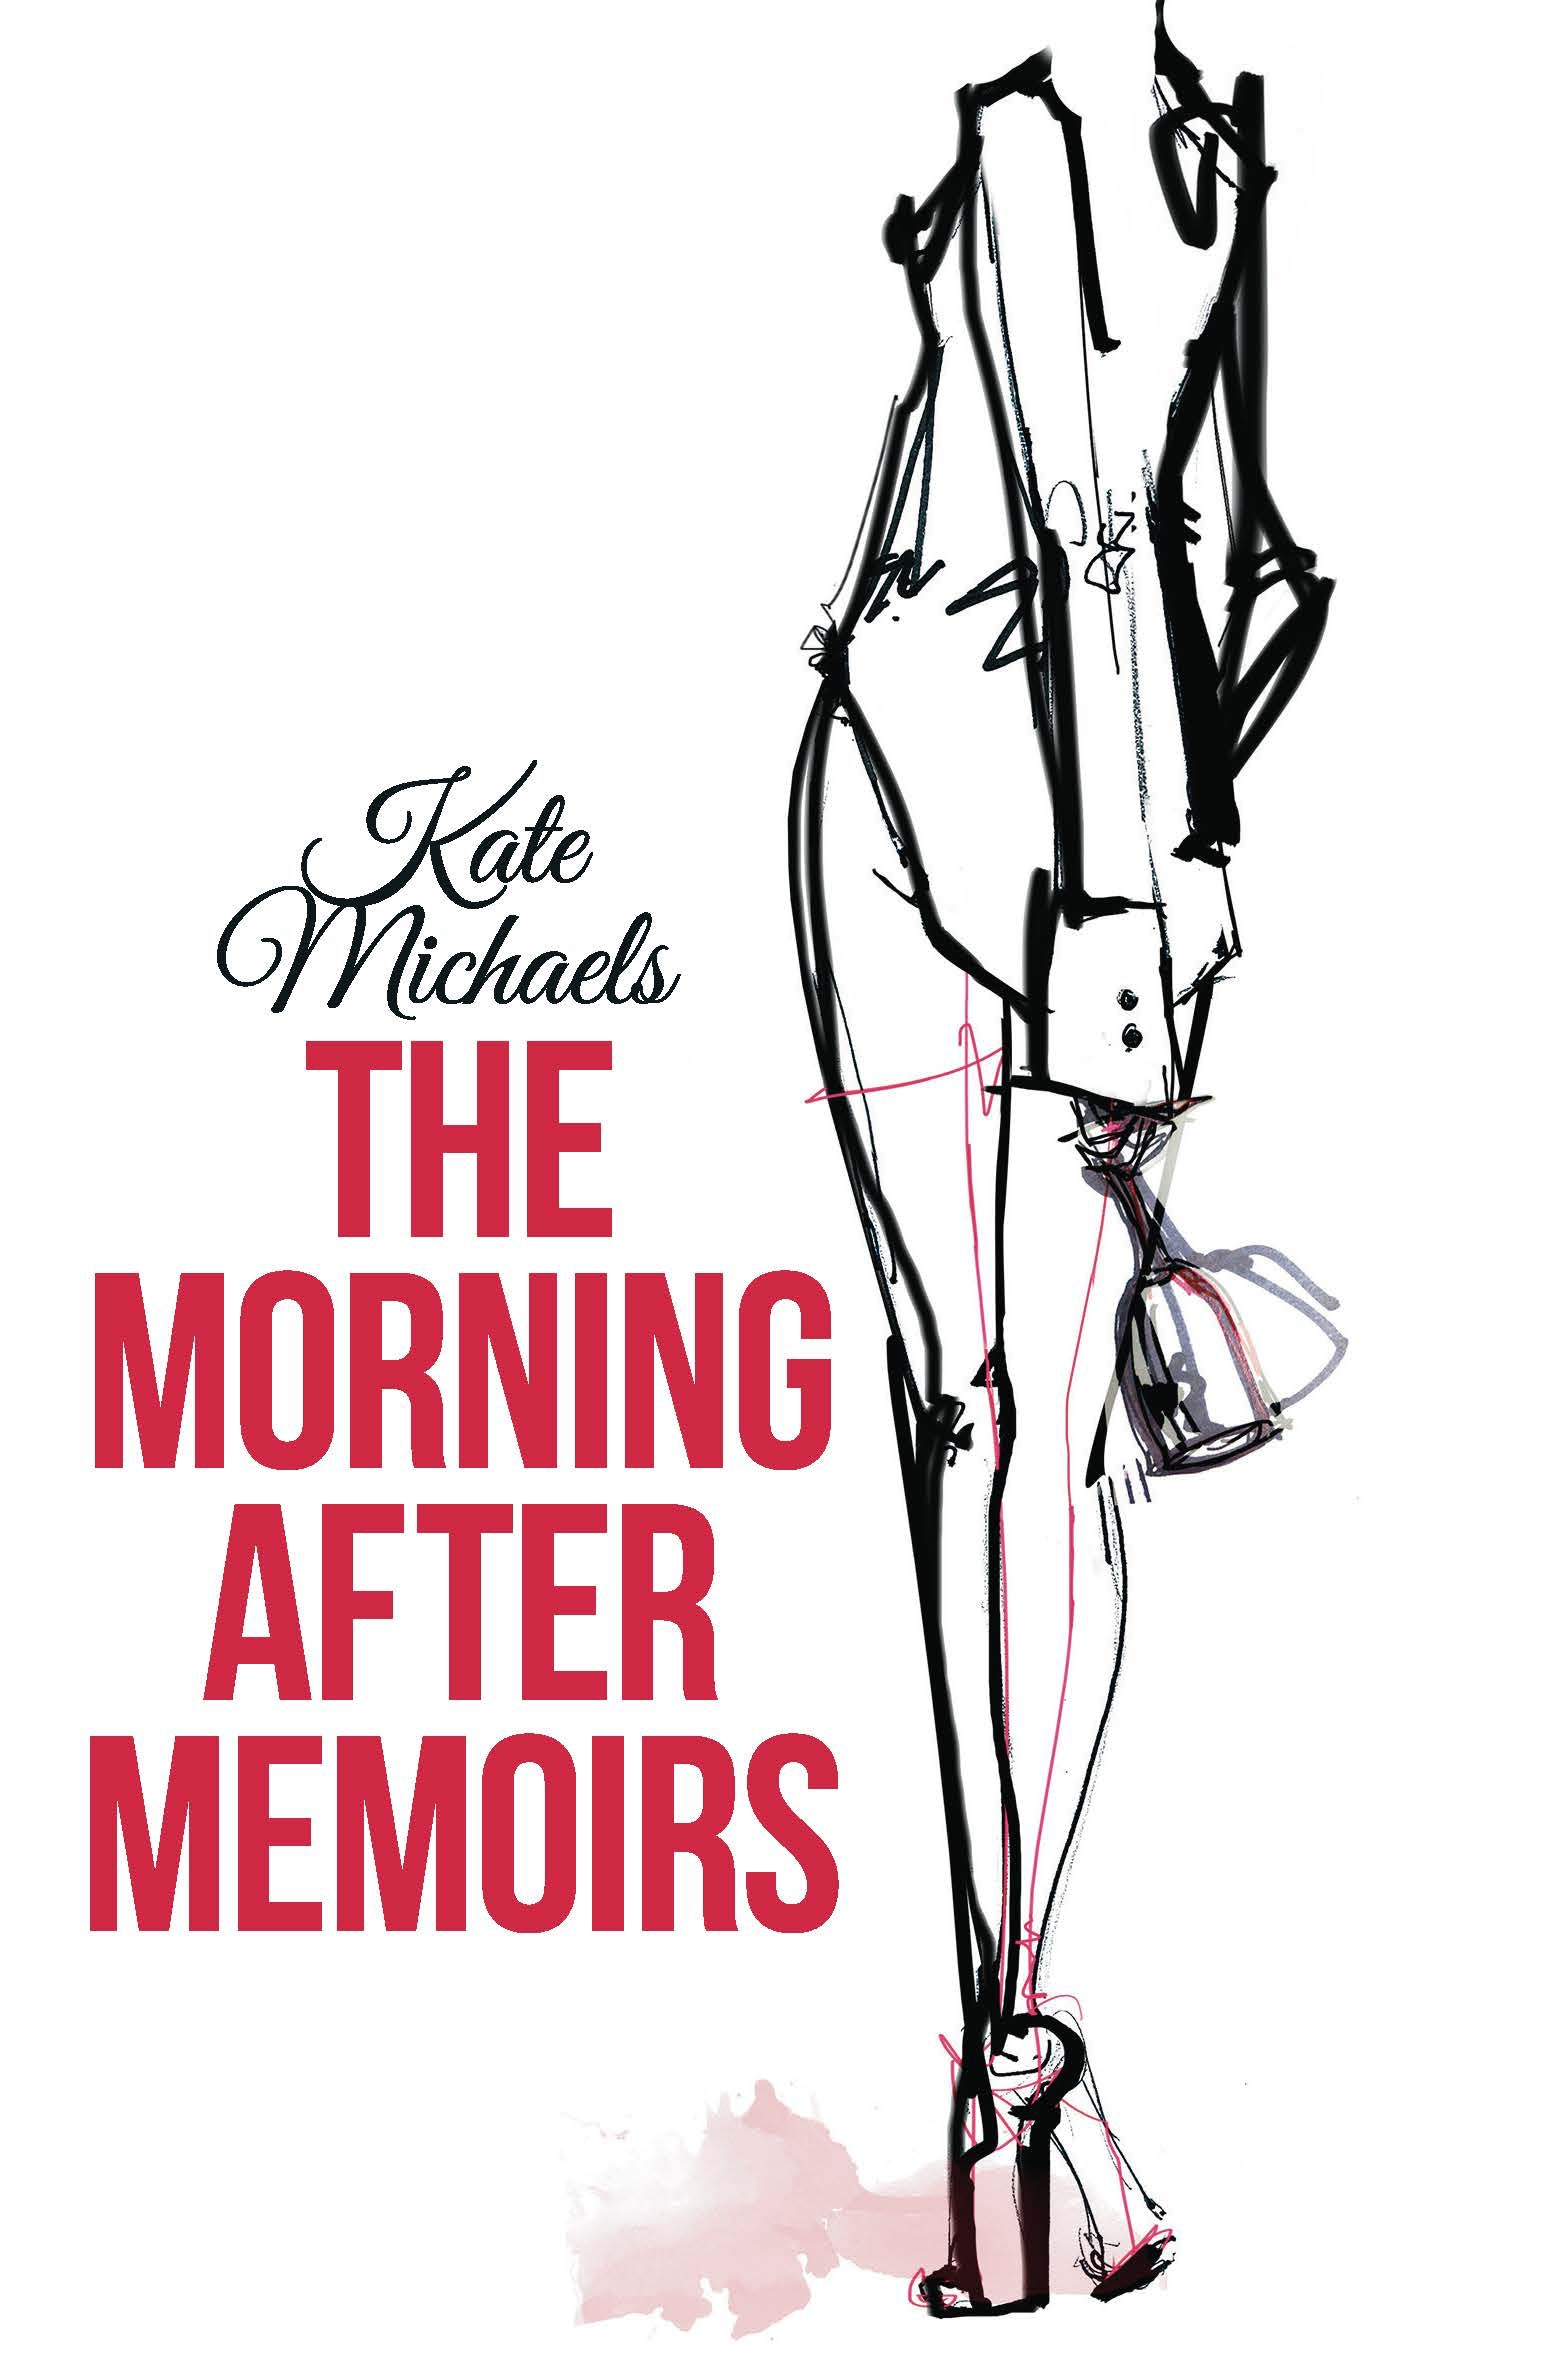 The Morning After Memoirs sweepstakes